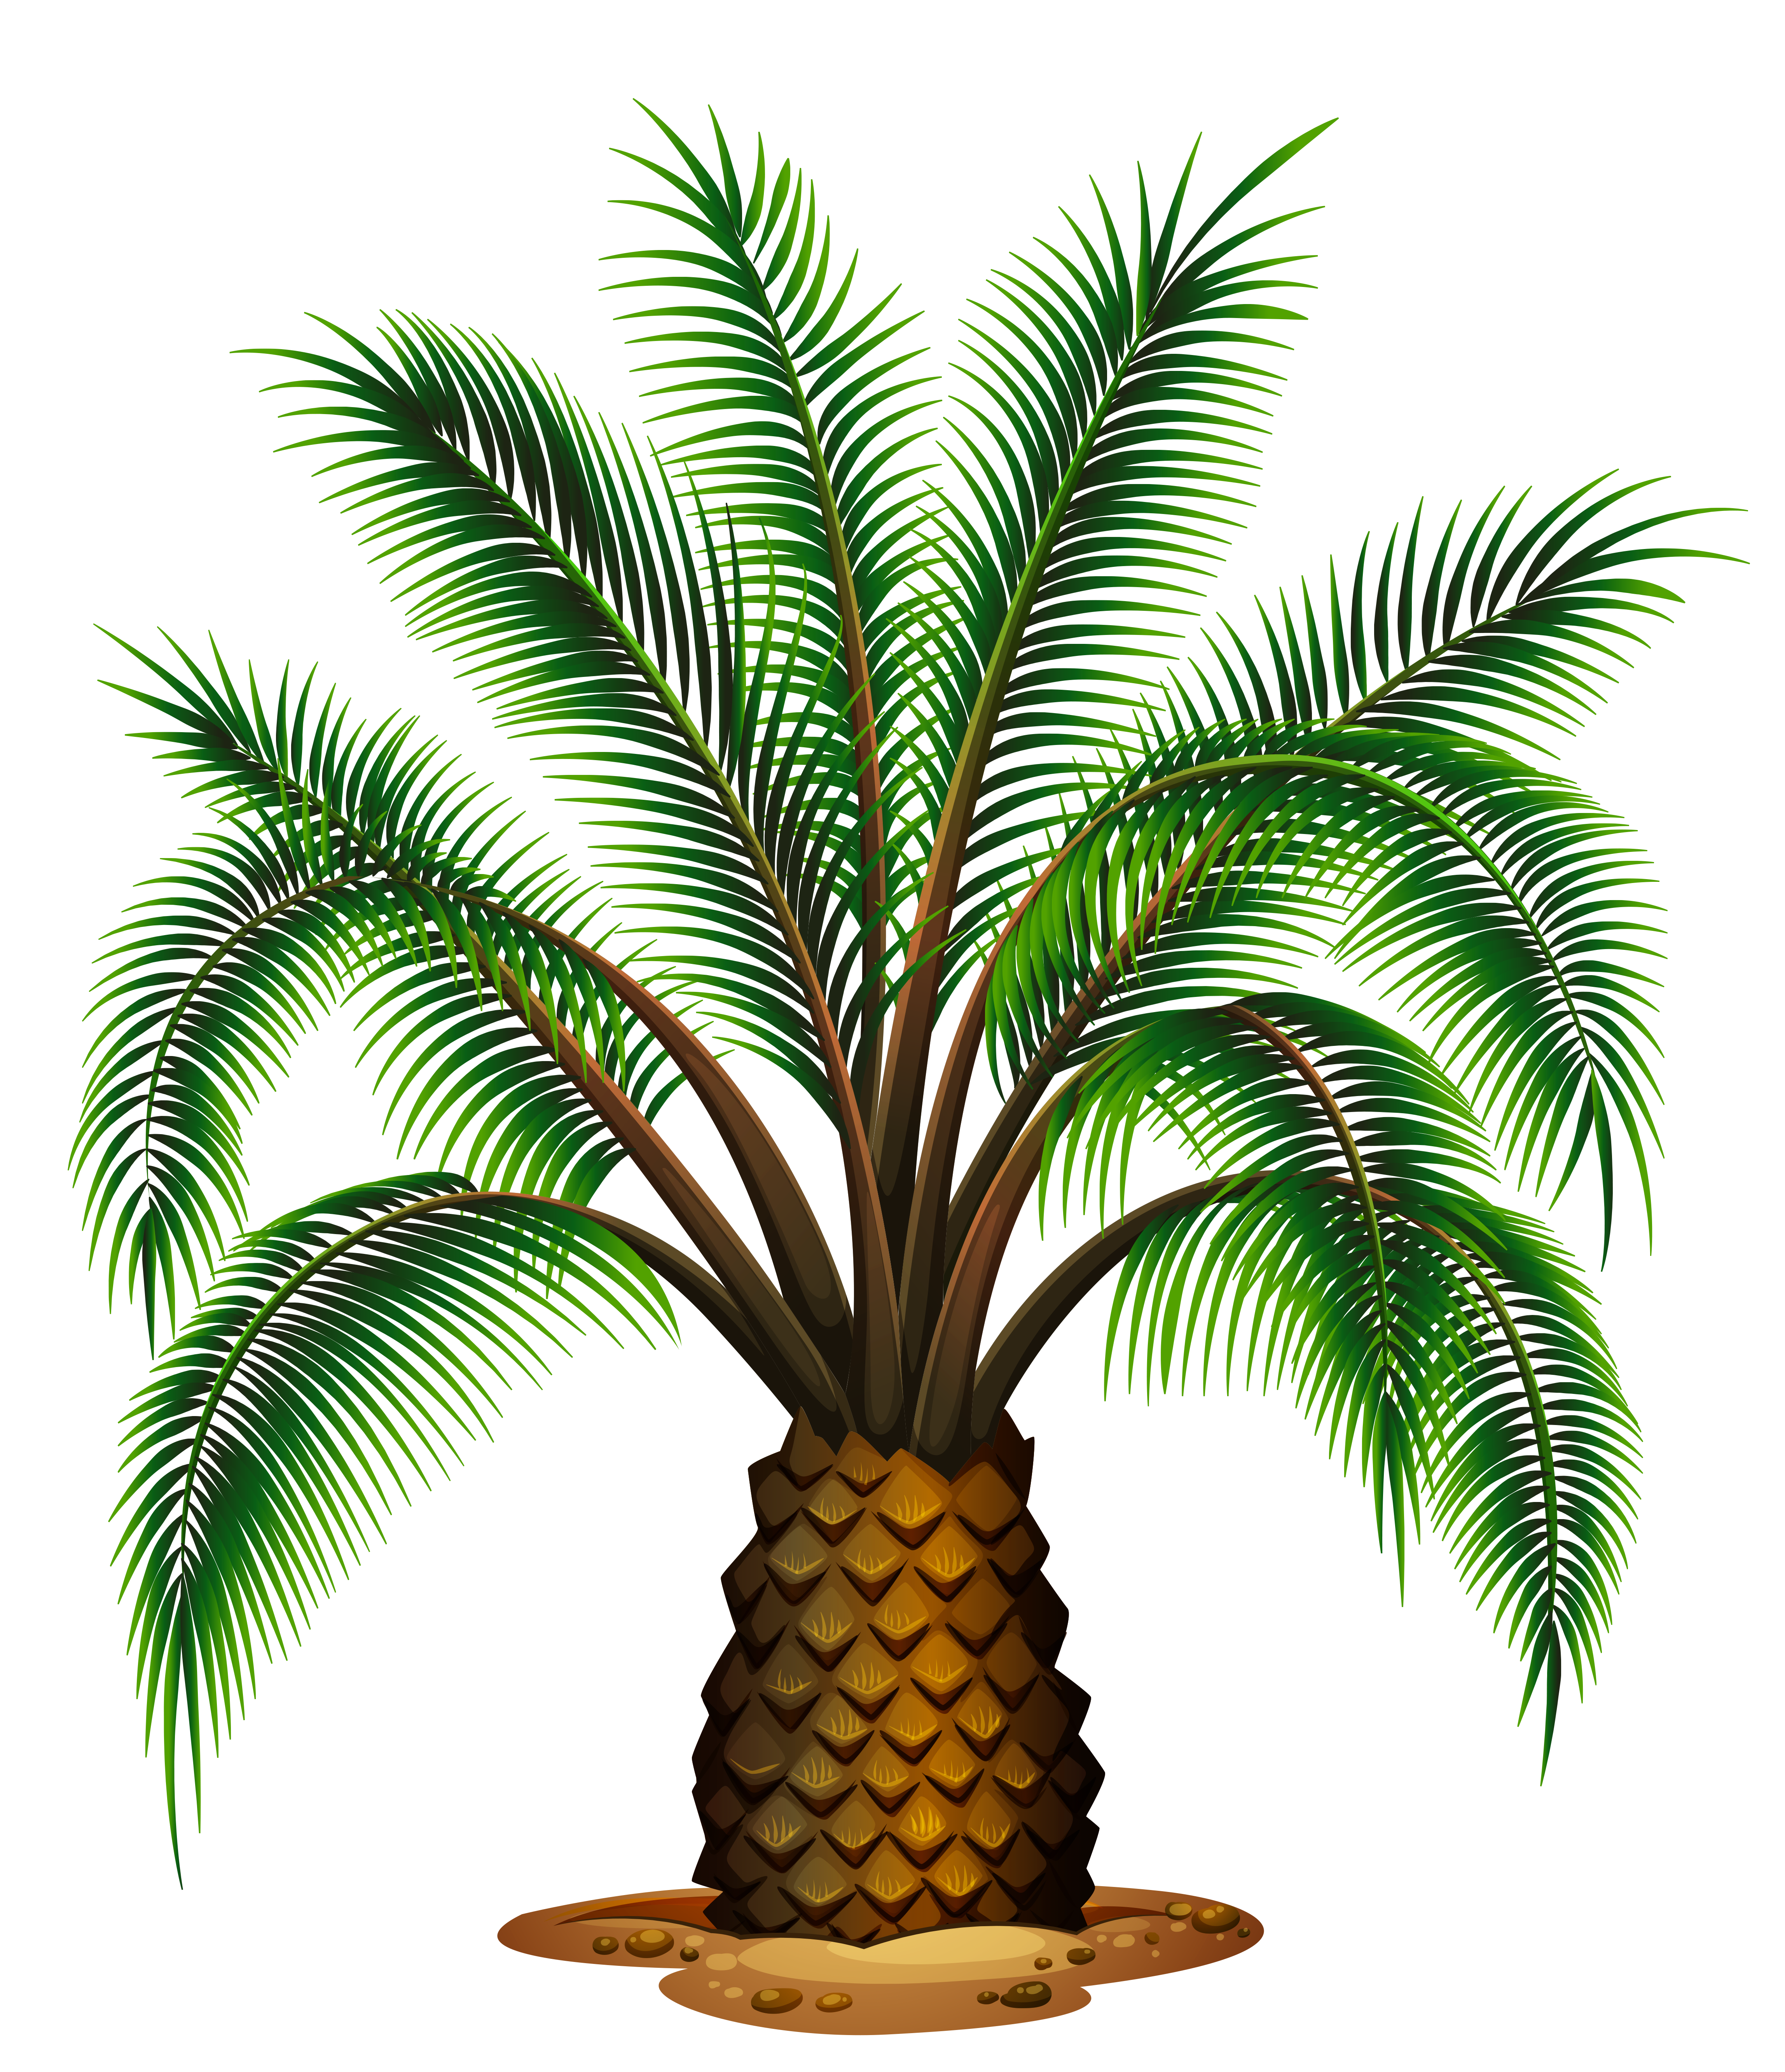 Palm tree clipart vector picture free Small Palm Tree Transparent Picture | Gallery Yopriceville - High ... picture free